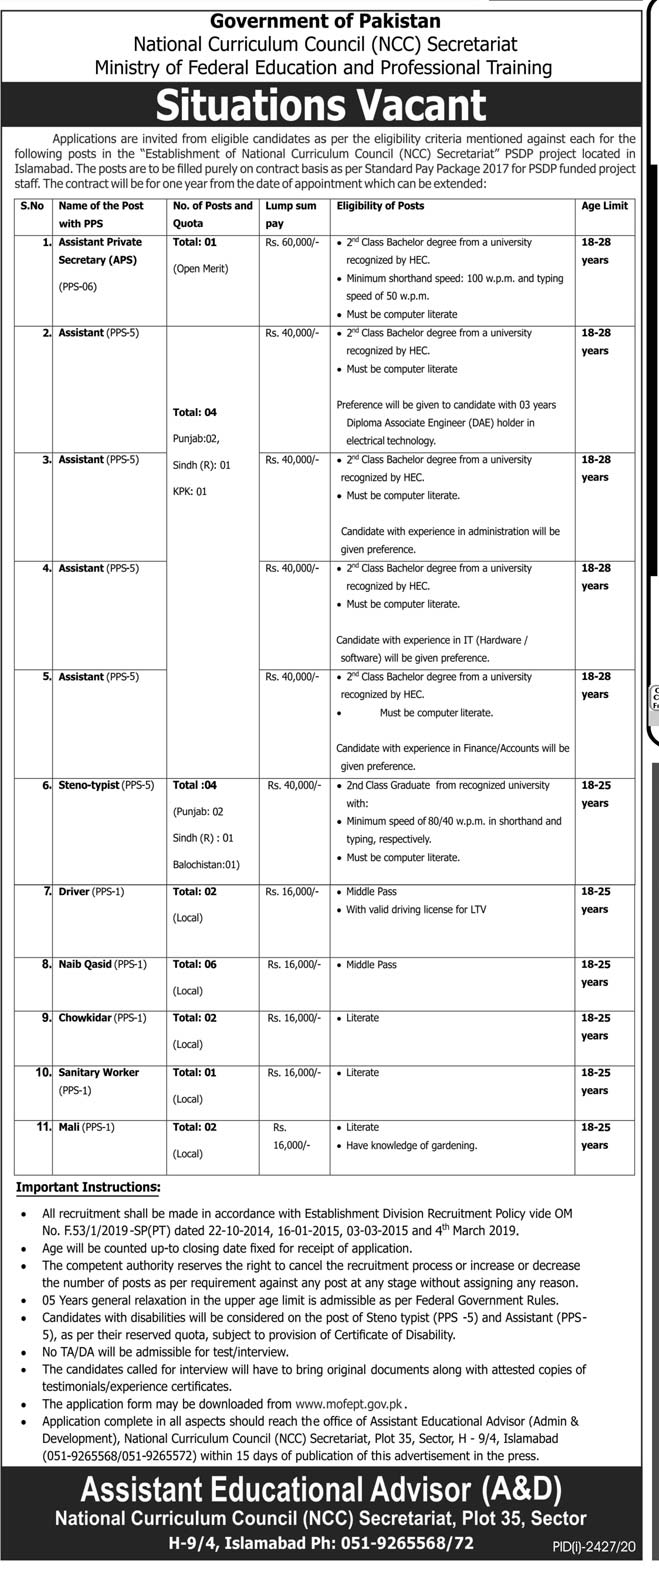 Application Procedure: Application complete in all aspects should reach the office of Assistant Educational Advisor (Admin & Department), National Curriculum Council (NCC) Secretariat, Plot 35, Sector H-9/4, Islamabad. The application should reach within 15 days after the publication of this advertisement